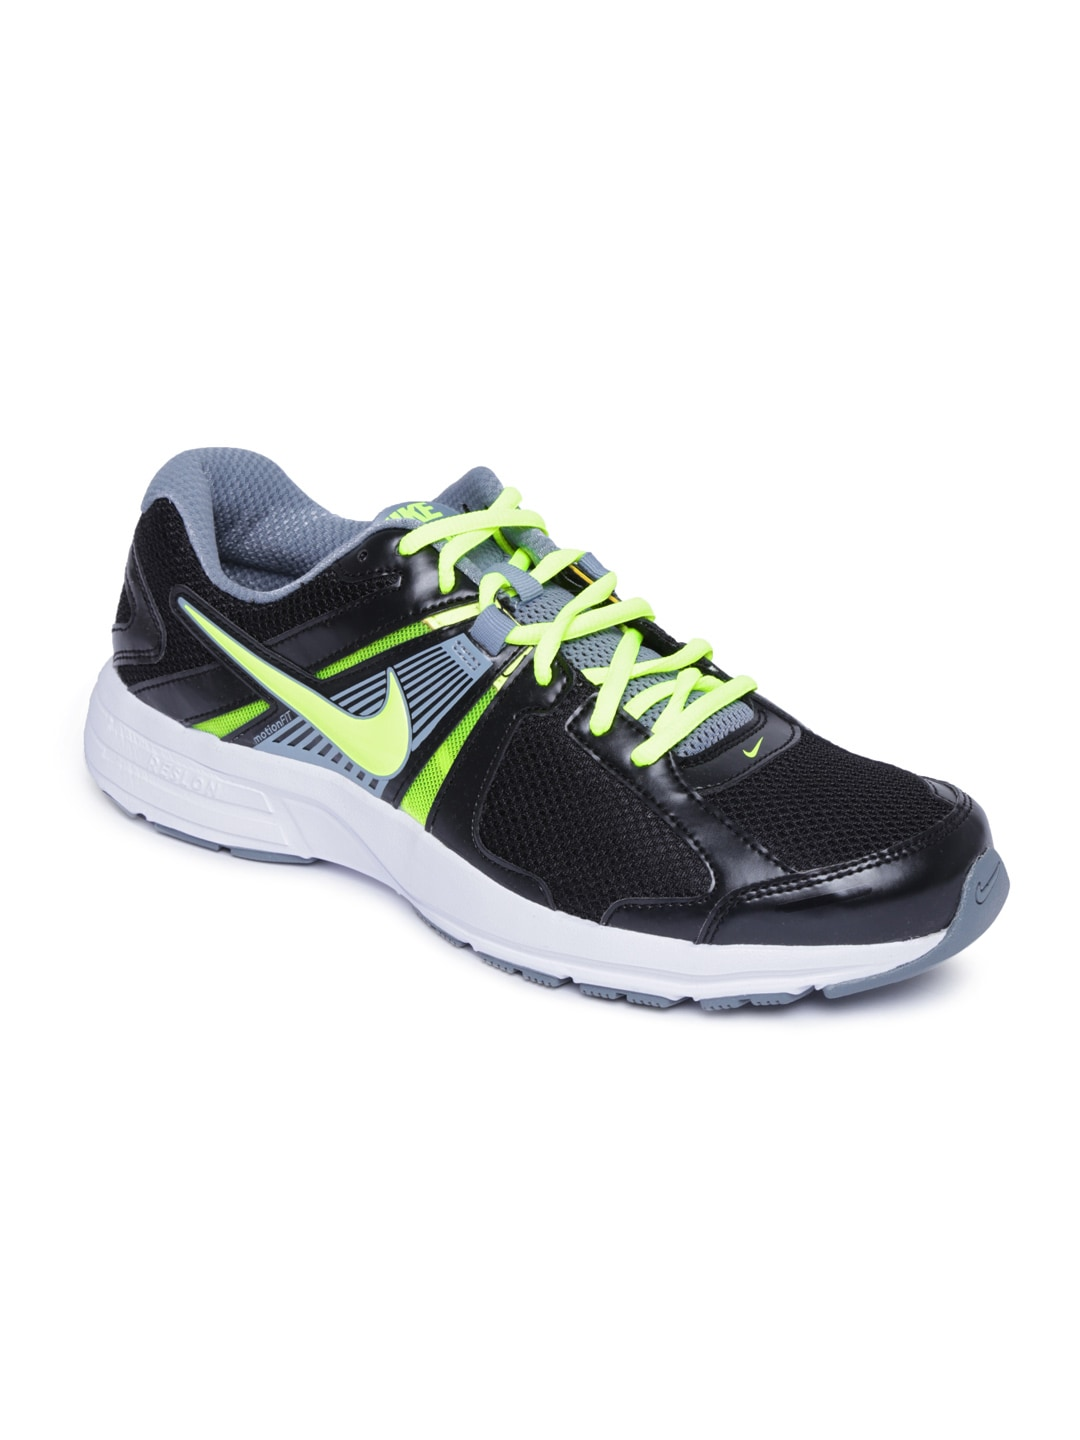 Coupon Deals Ma Lease Nike Nissan Shoes Myntra voor znYB5q